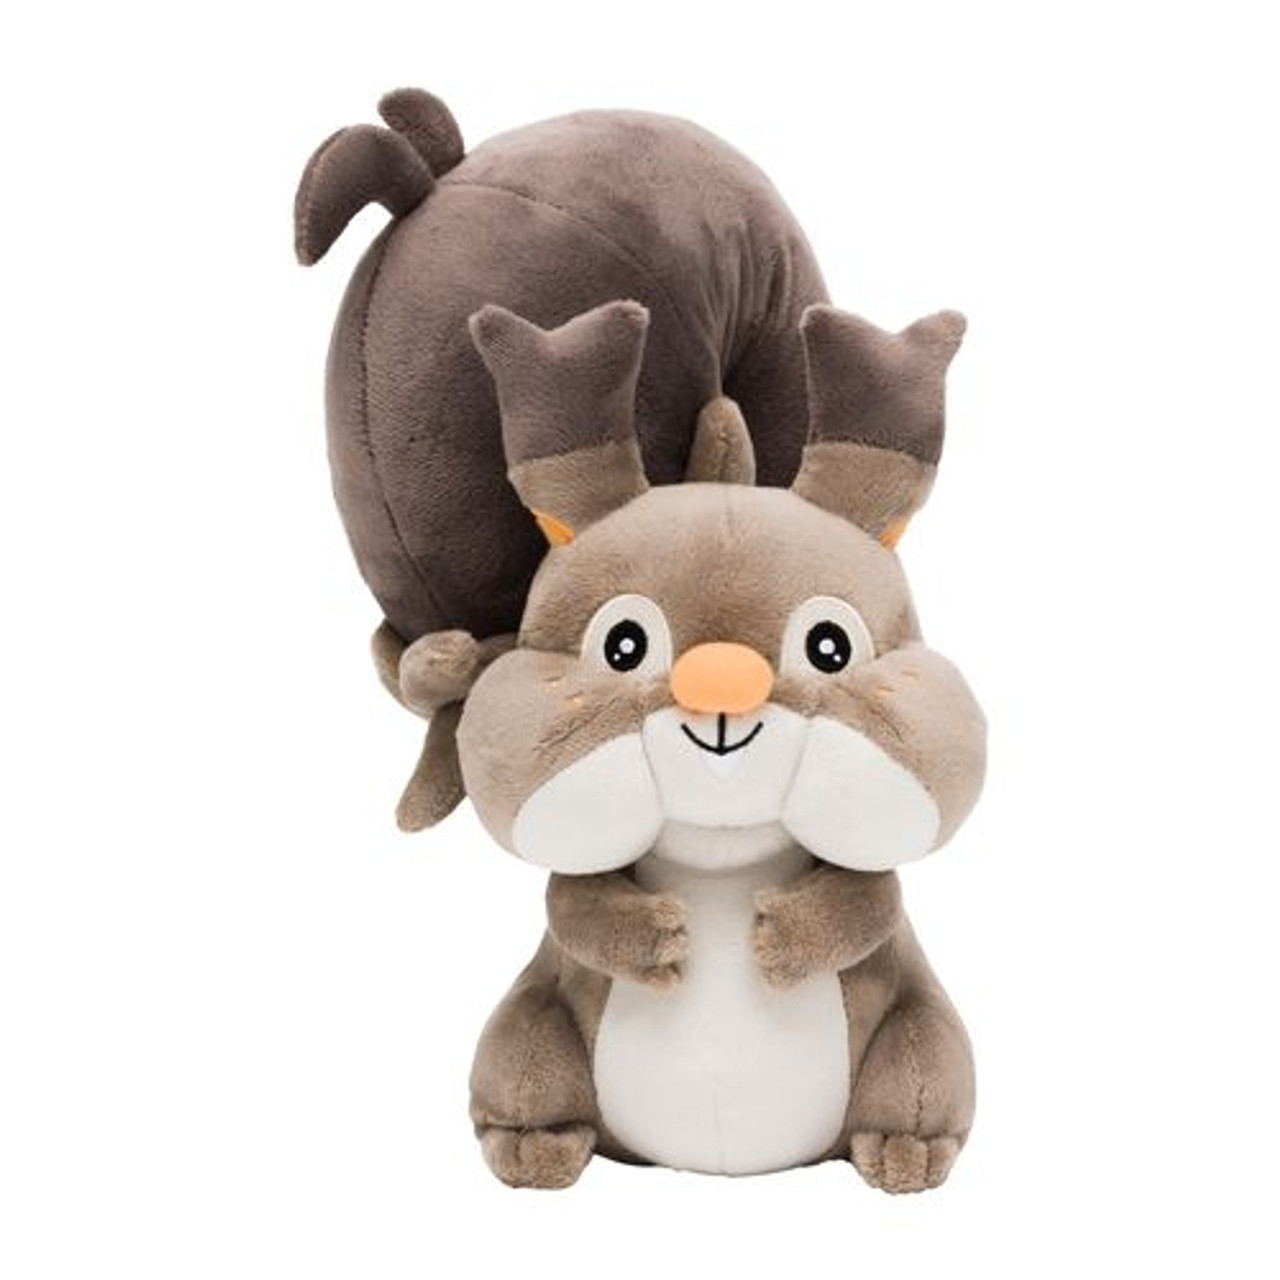 Pokemon Plush doll Toxtricity Sword /& Shield Japan NEW Amped Form